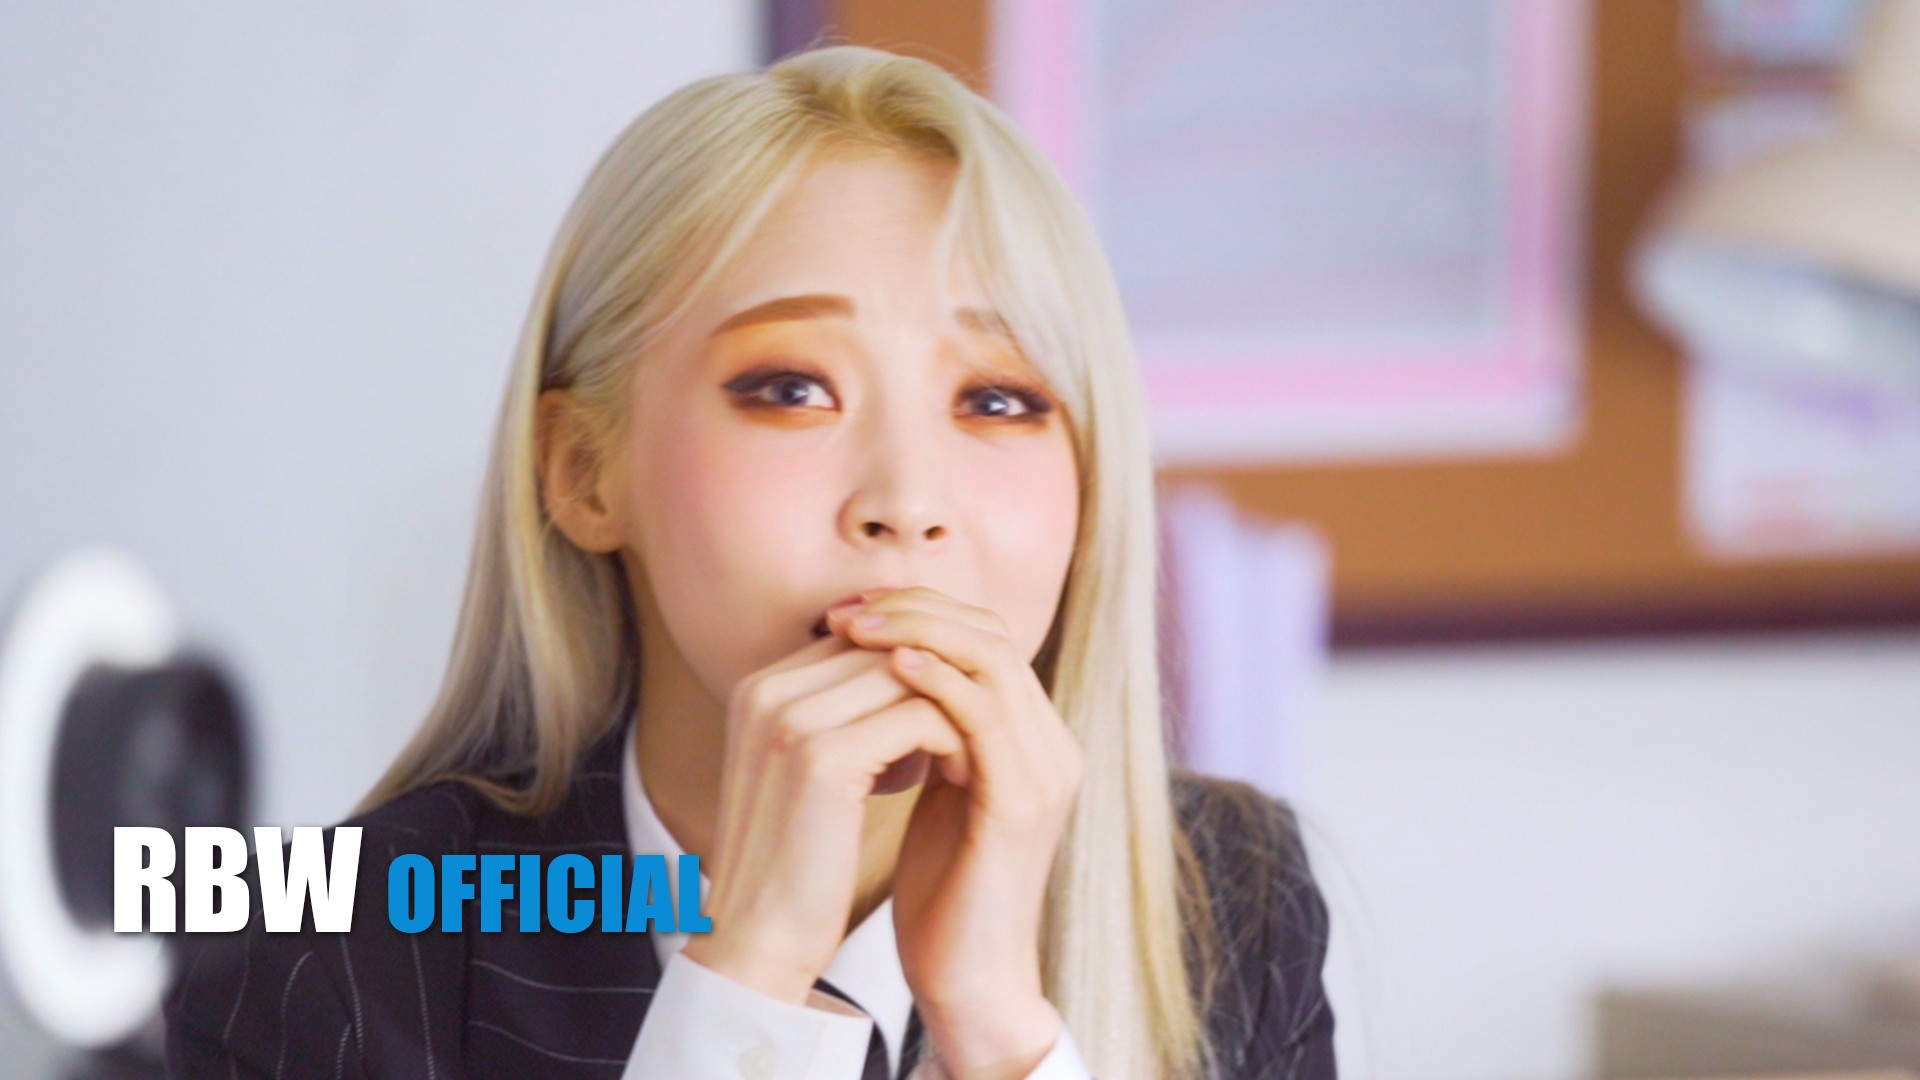 [문별] 고고베베(gogobebe) Making Film